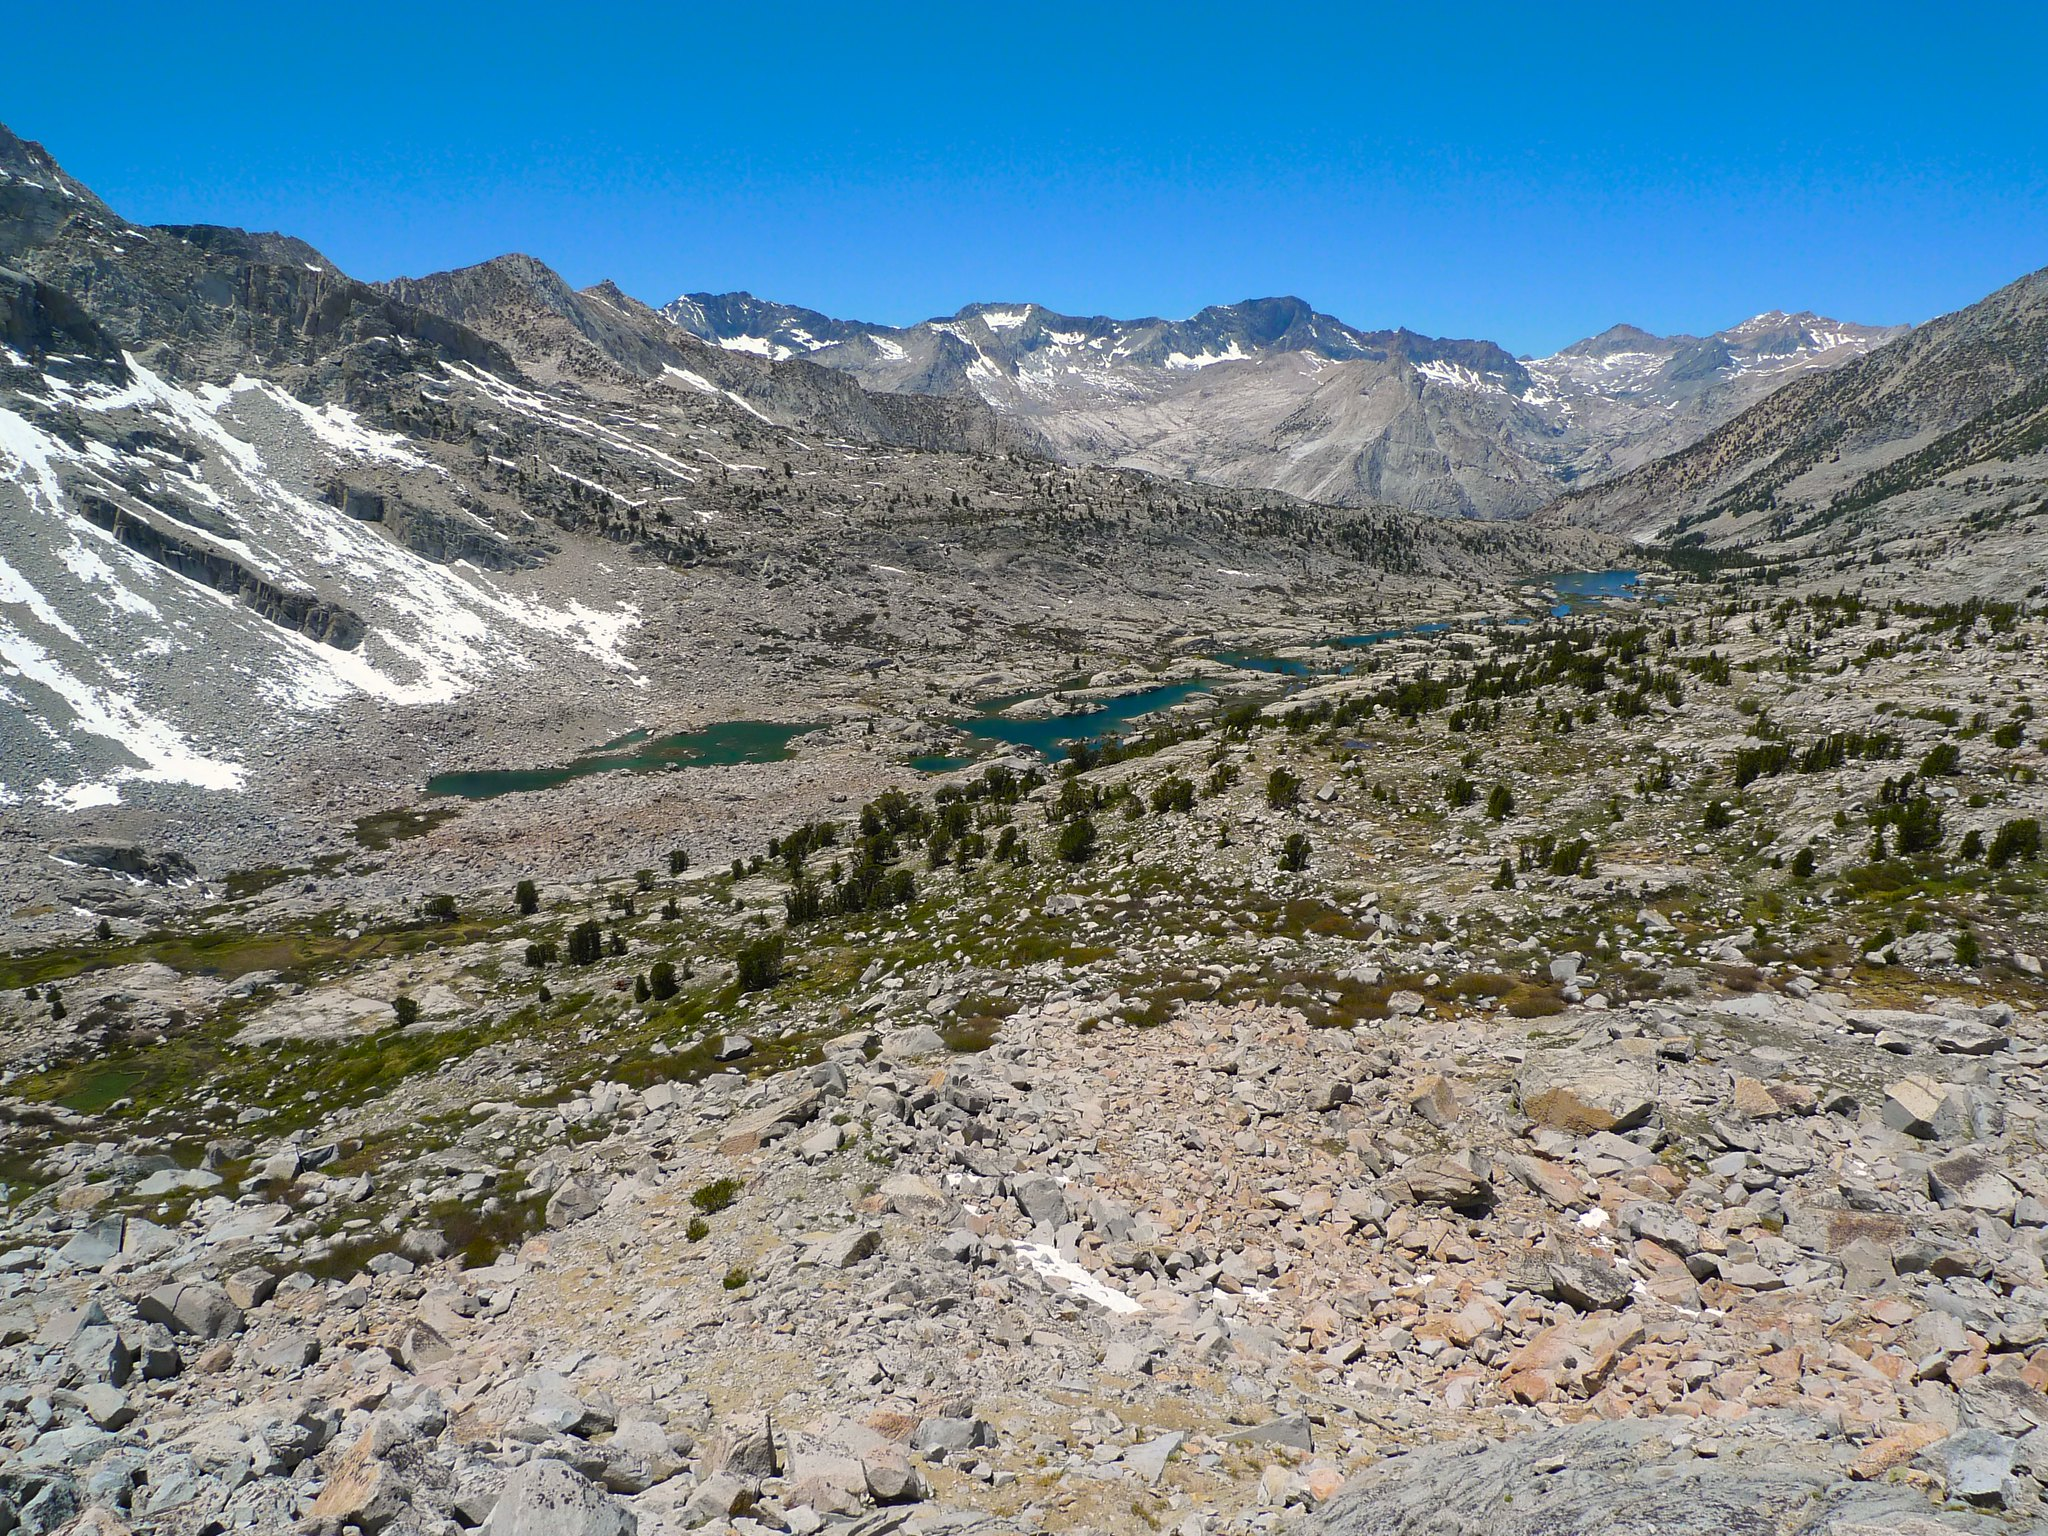 Looking down at lower Dusy Basin and the ridiculous talus I've been crossing